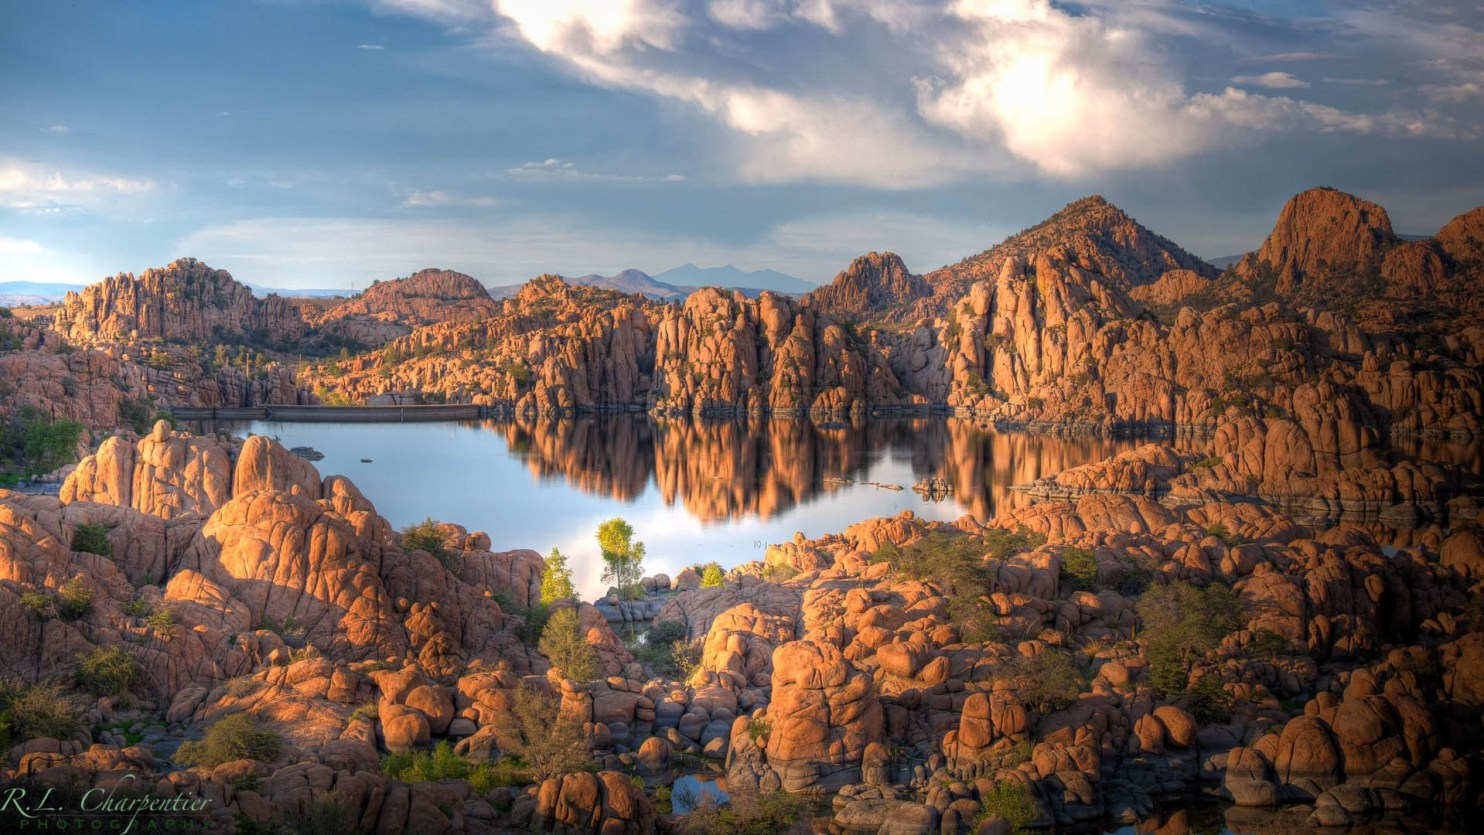 Watson Lake Park in the Granite Dells, Prescott Arizona